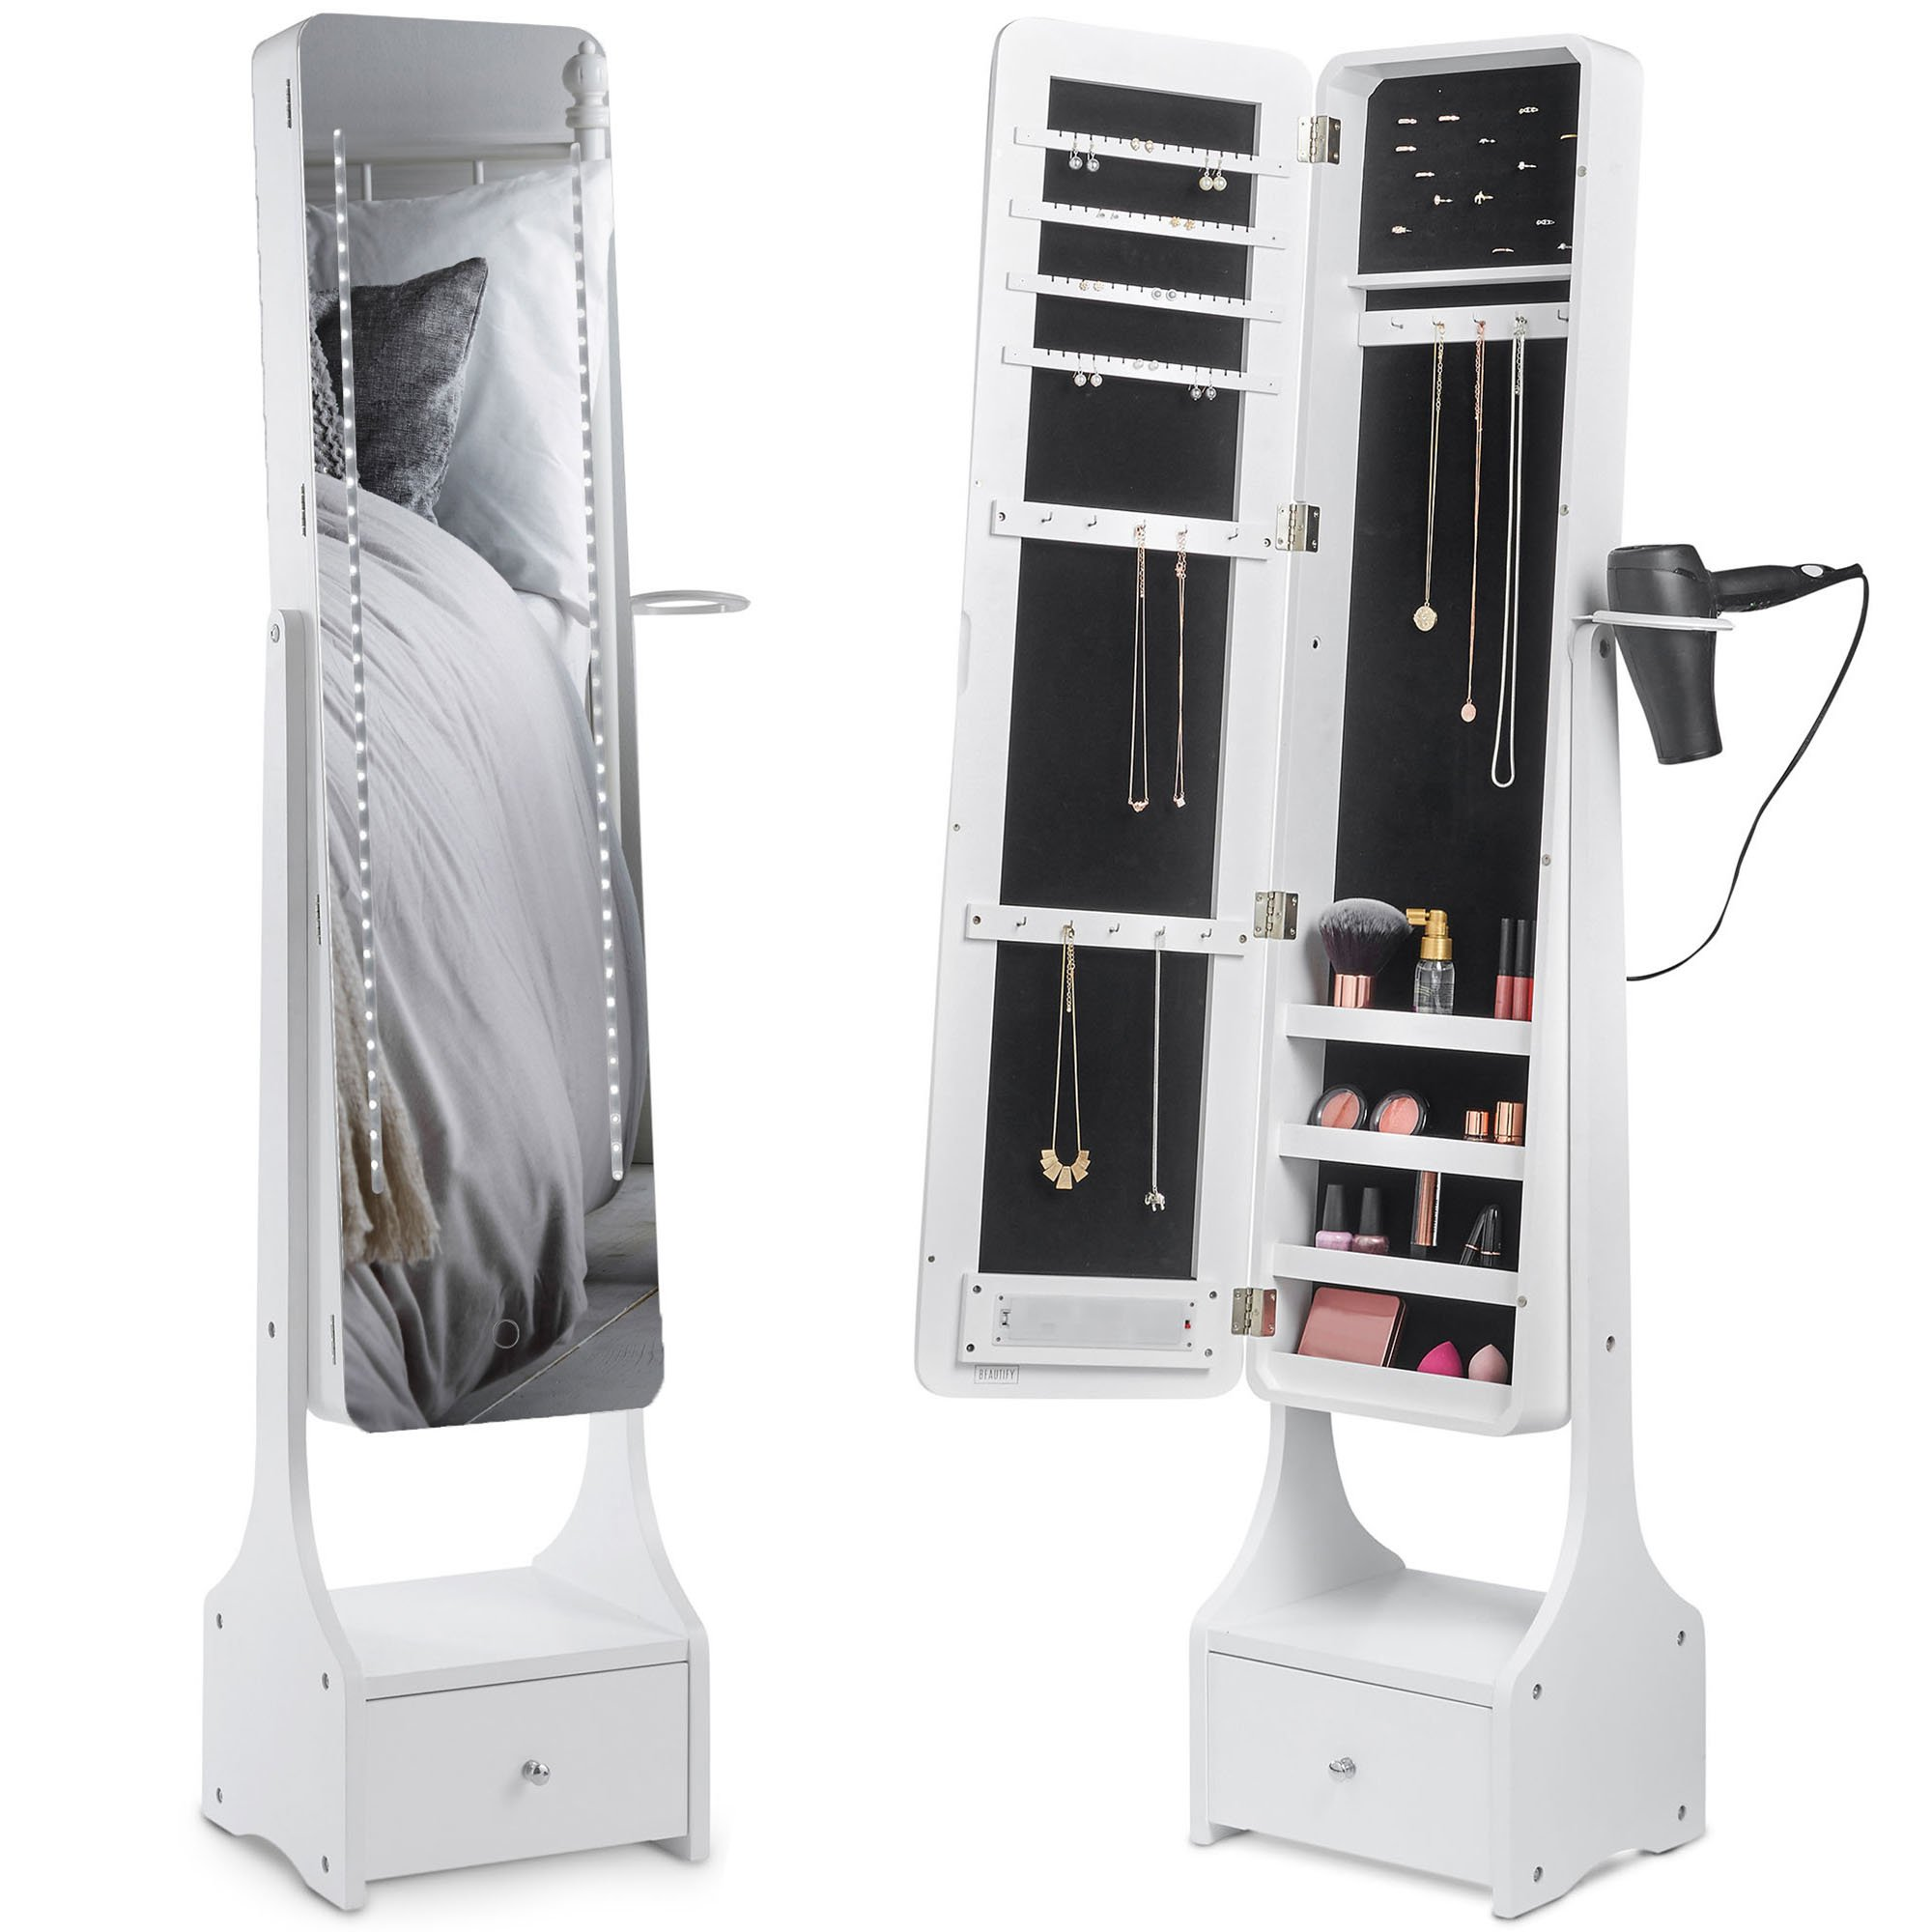 Beautify Touch screen LED Jewelry Cabinet Armoire Illuminating Mirrored Light Standing Organizer with Mirror, Makeup Storage and Drawer - White by Beautify